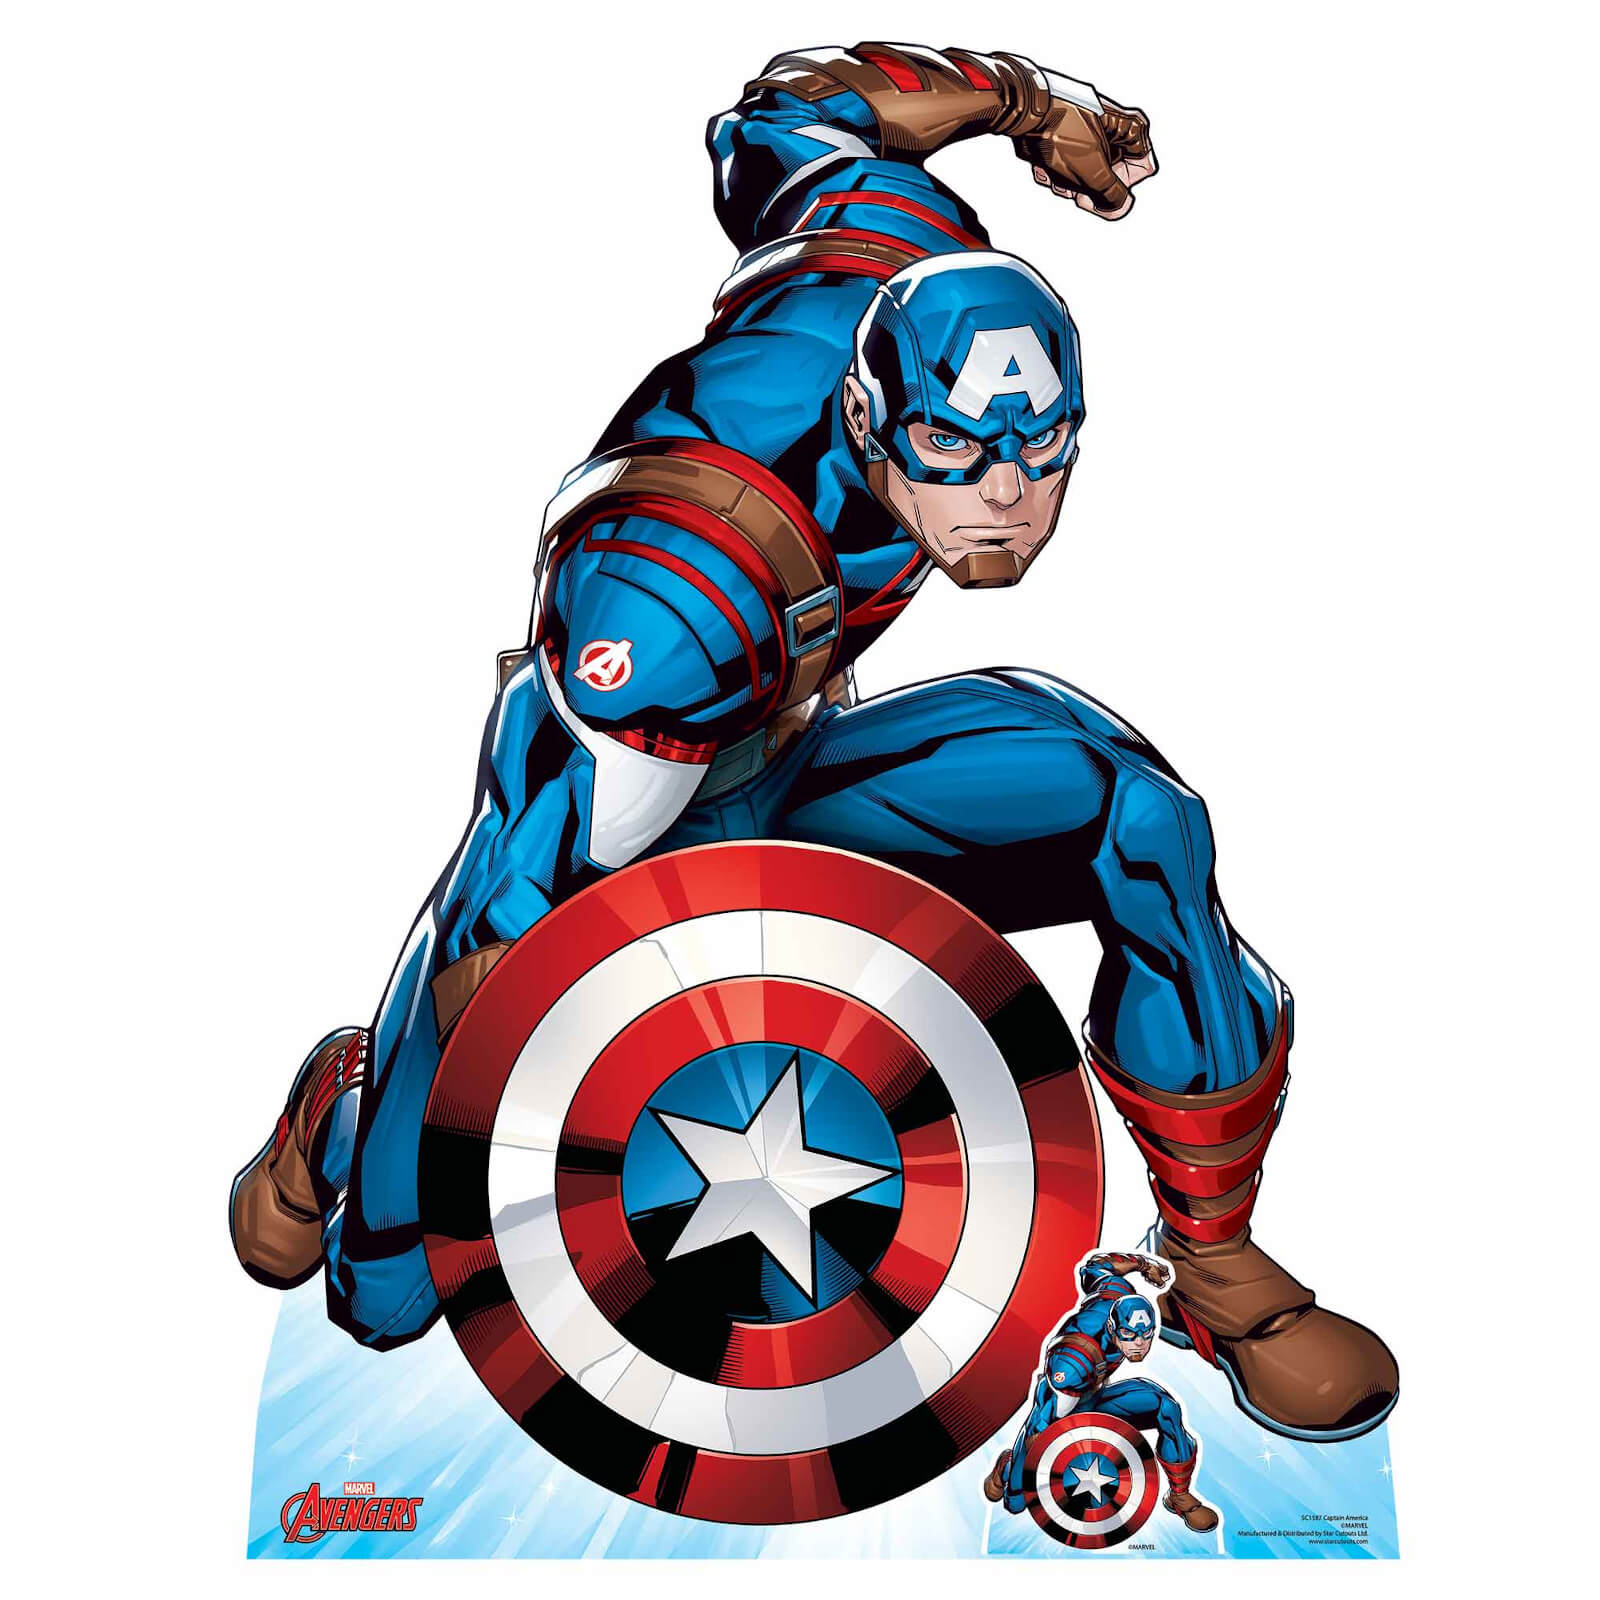 Image of The Avengers Captain America Lifesized Cardboard Cut Out